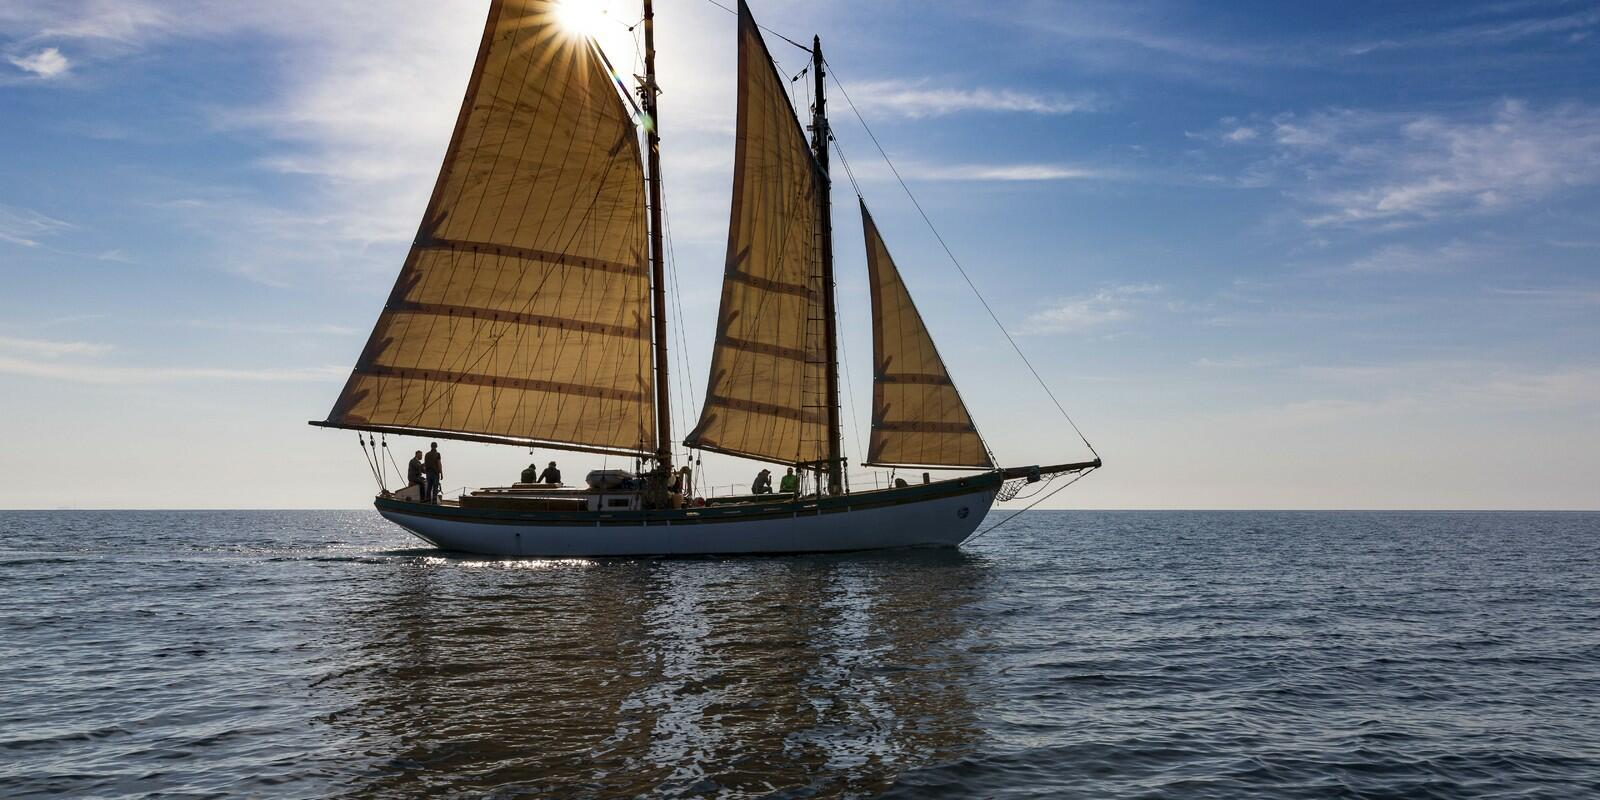 Weekend on a traditional schooner among the crystalline waters of Isola del Giglio